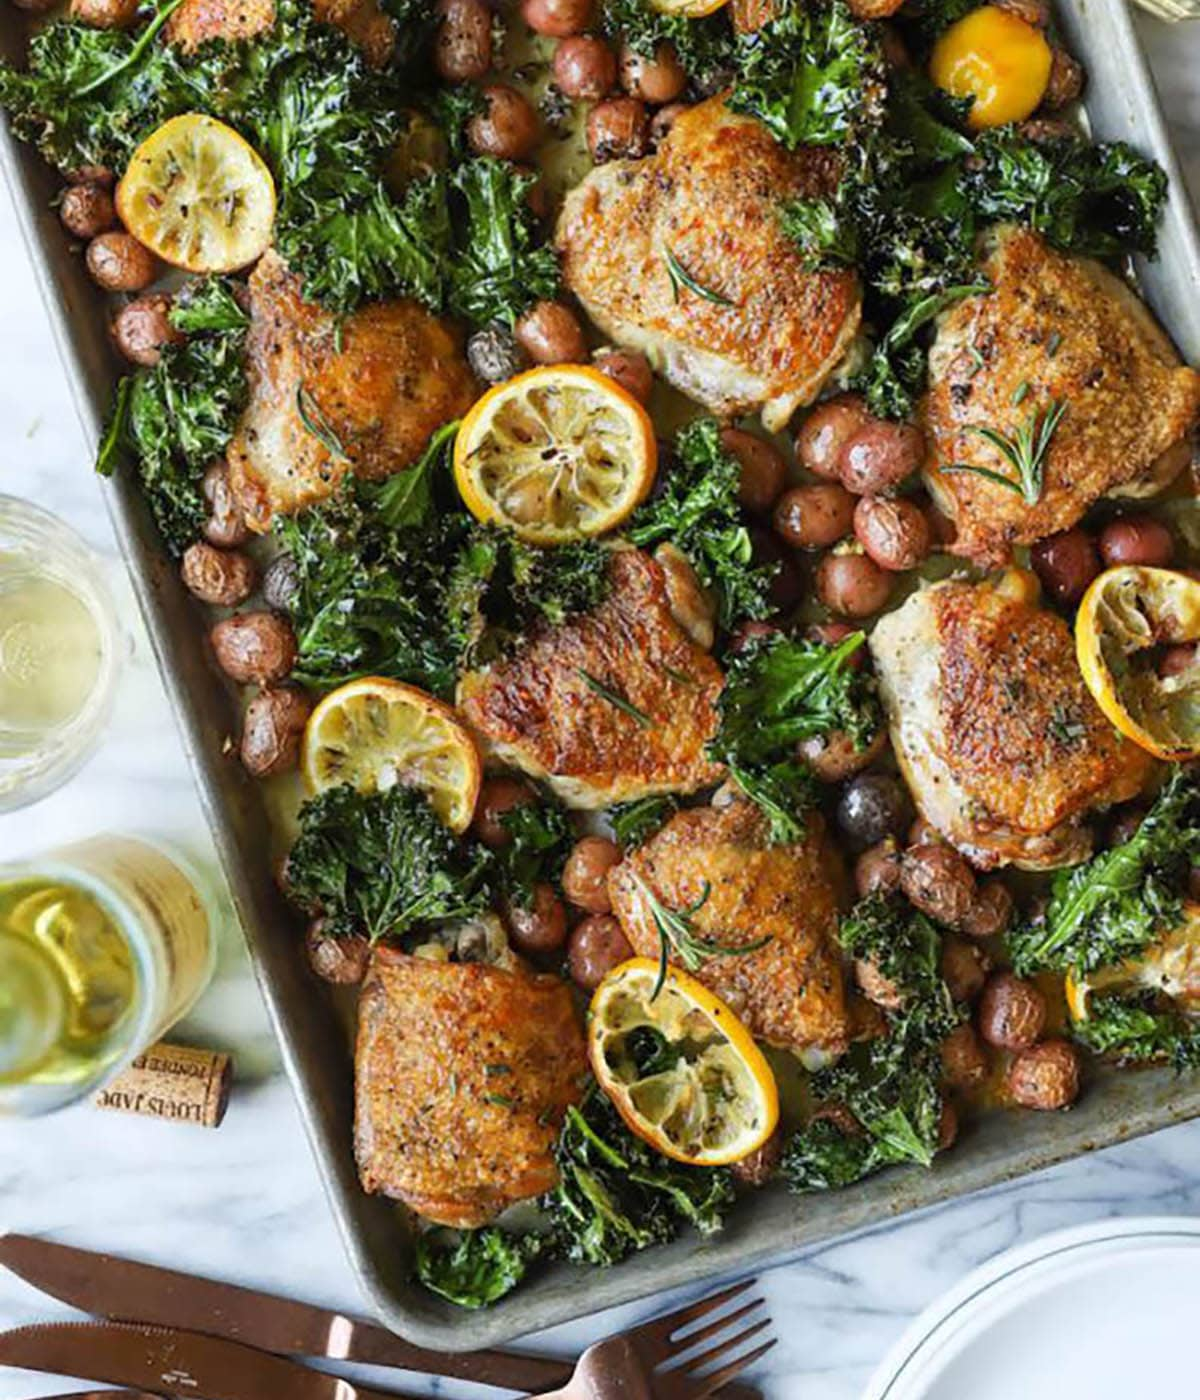 Sheet Pan Lemon Rosemary Chicken with kale, lemmon slices, rosemary and marble potatoes in a baking sheet